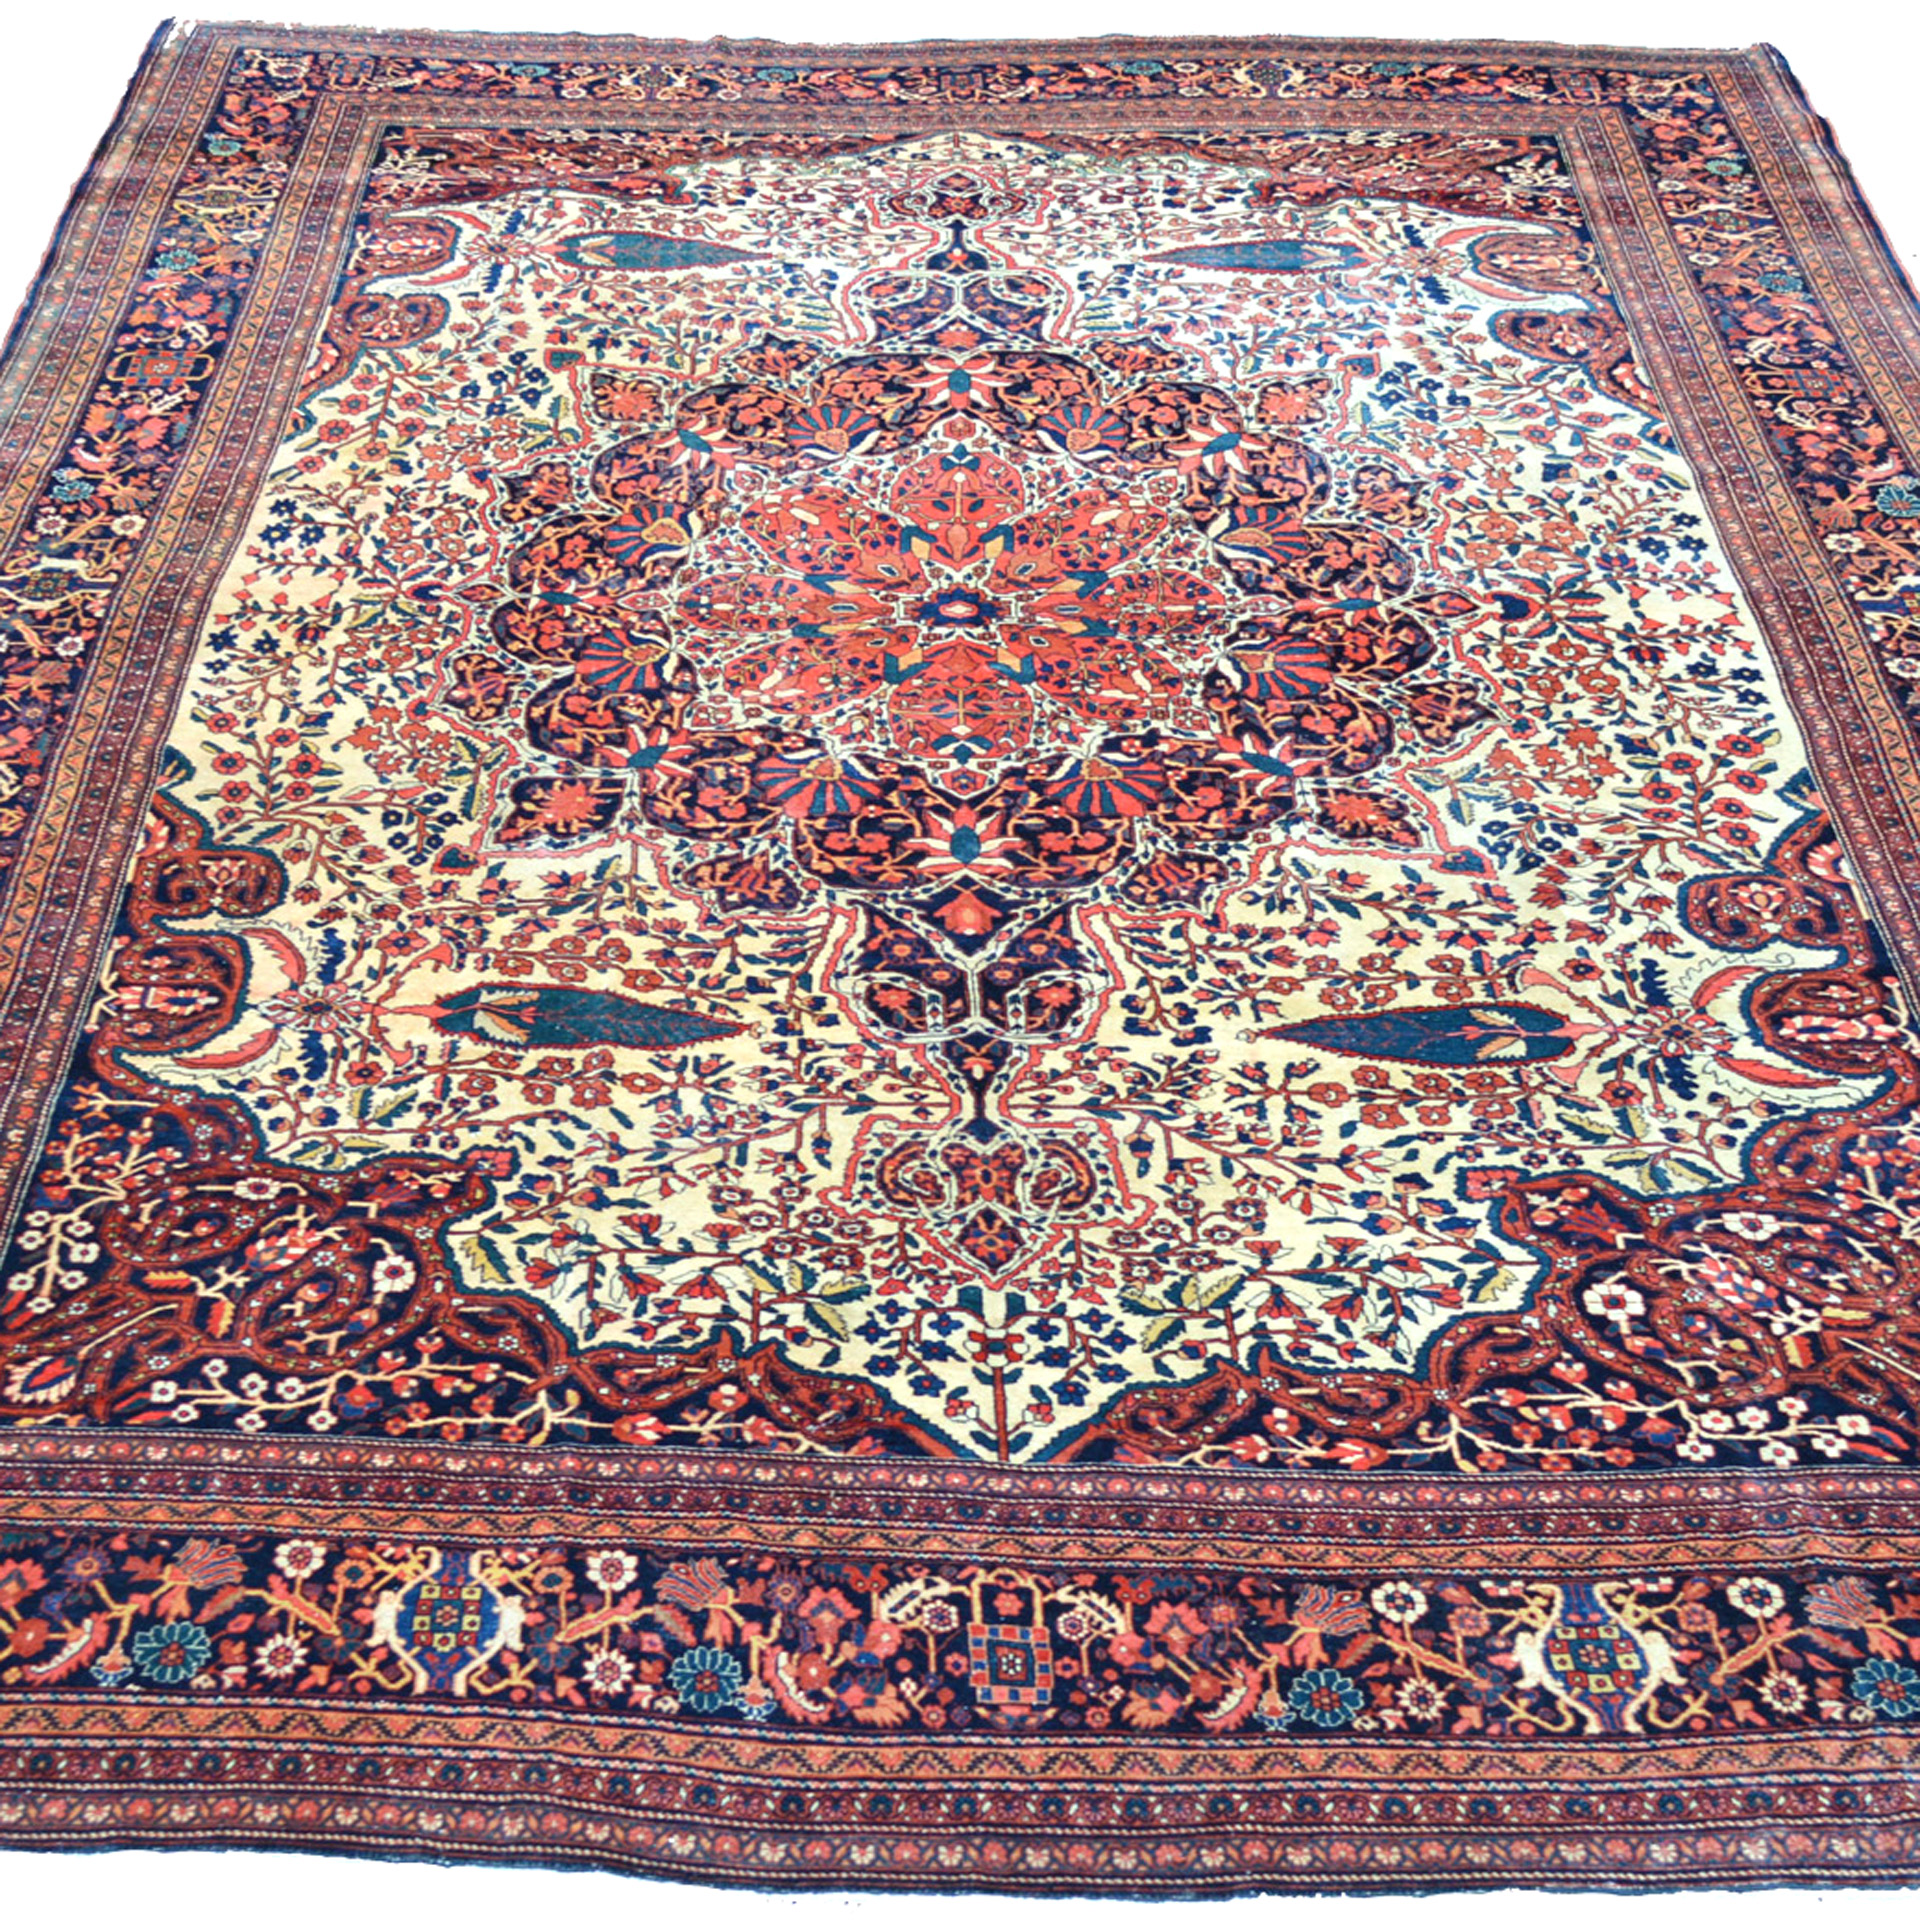 Antique Persian Fereghan Sarouk carpet with a medallion and Cypress Trees on an ivory field.